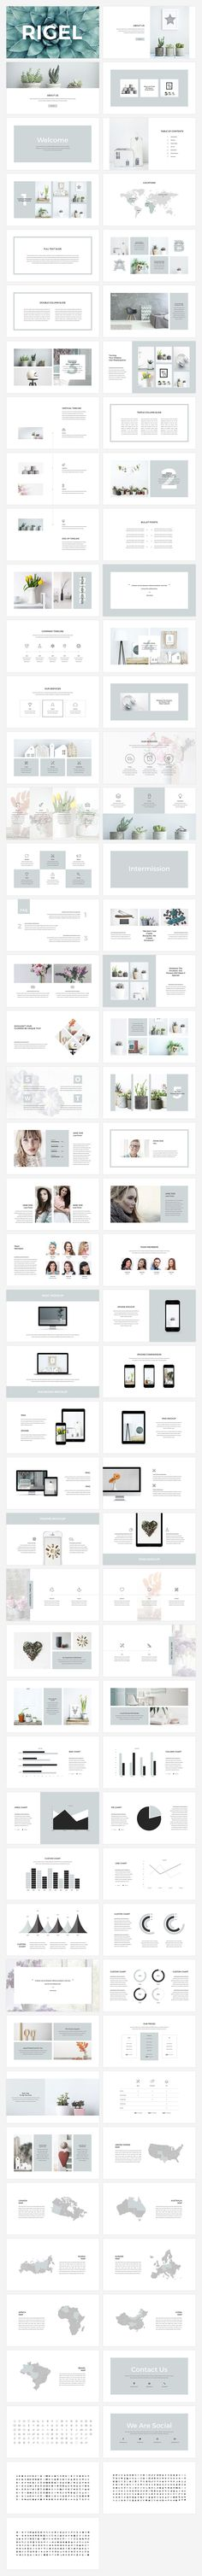 Rigel Presentation Template by SlideStation on @creativemarket                                                                                                                                                                                 More